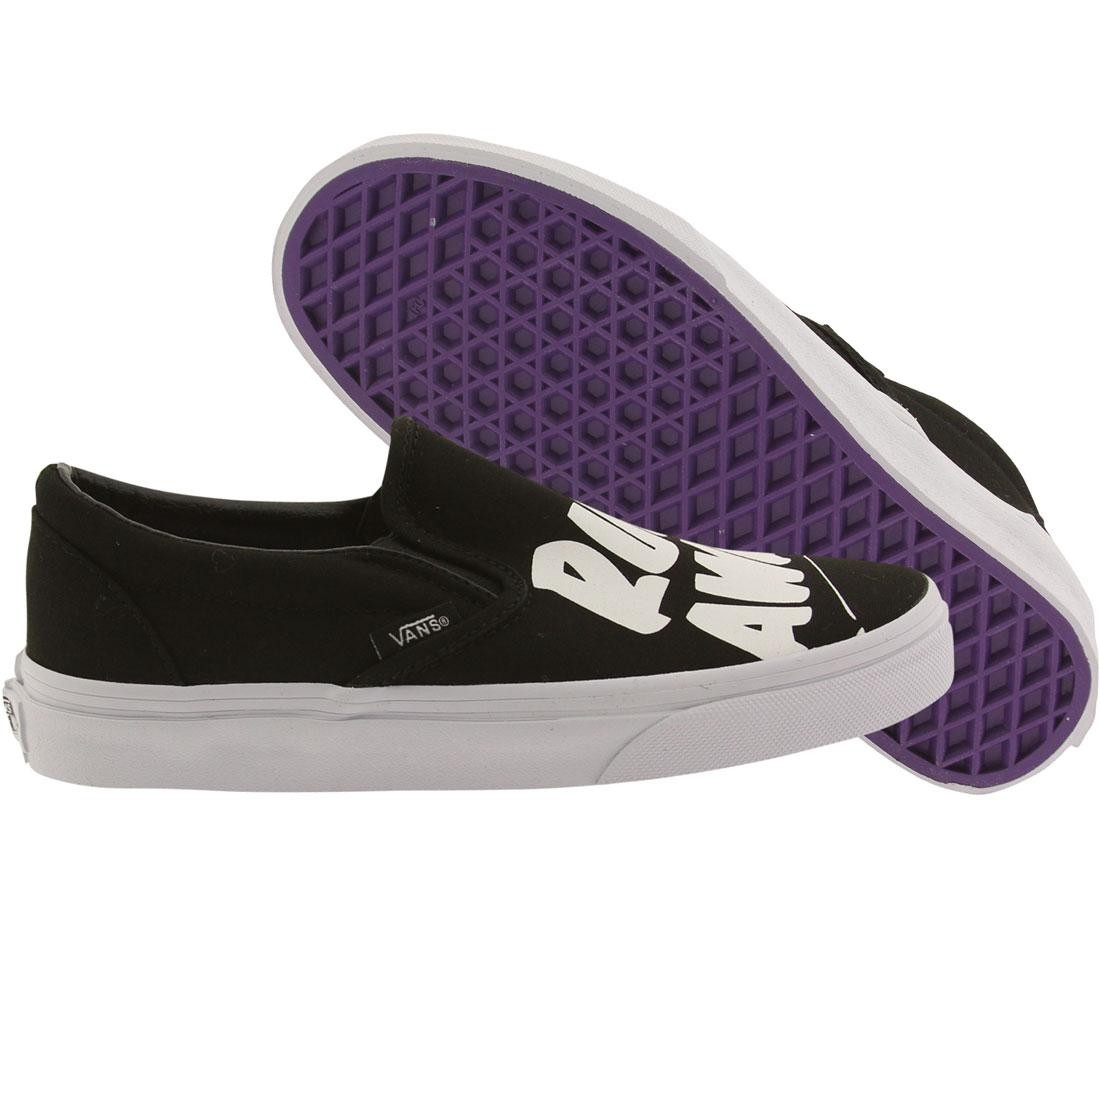 28d3ae5acd Vans Women Classic Slip-On - Baron Von Fancy black white